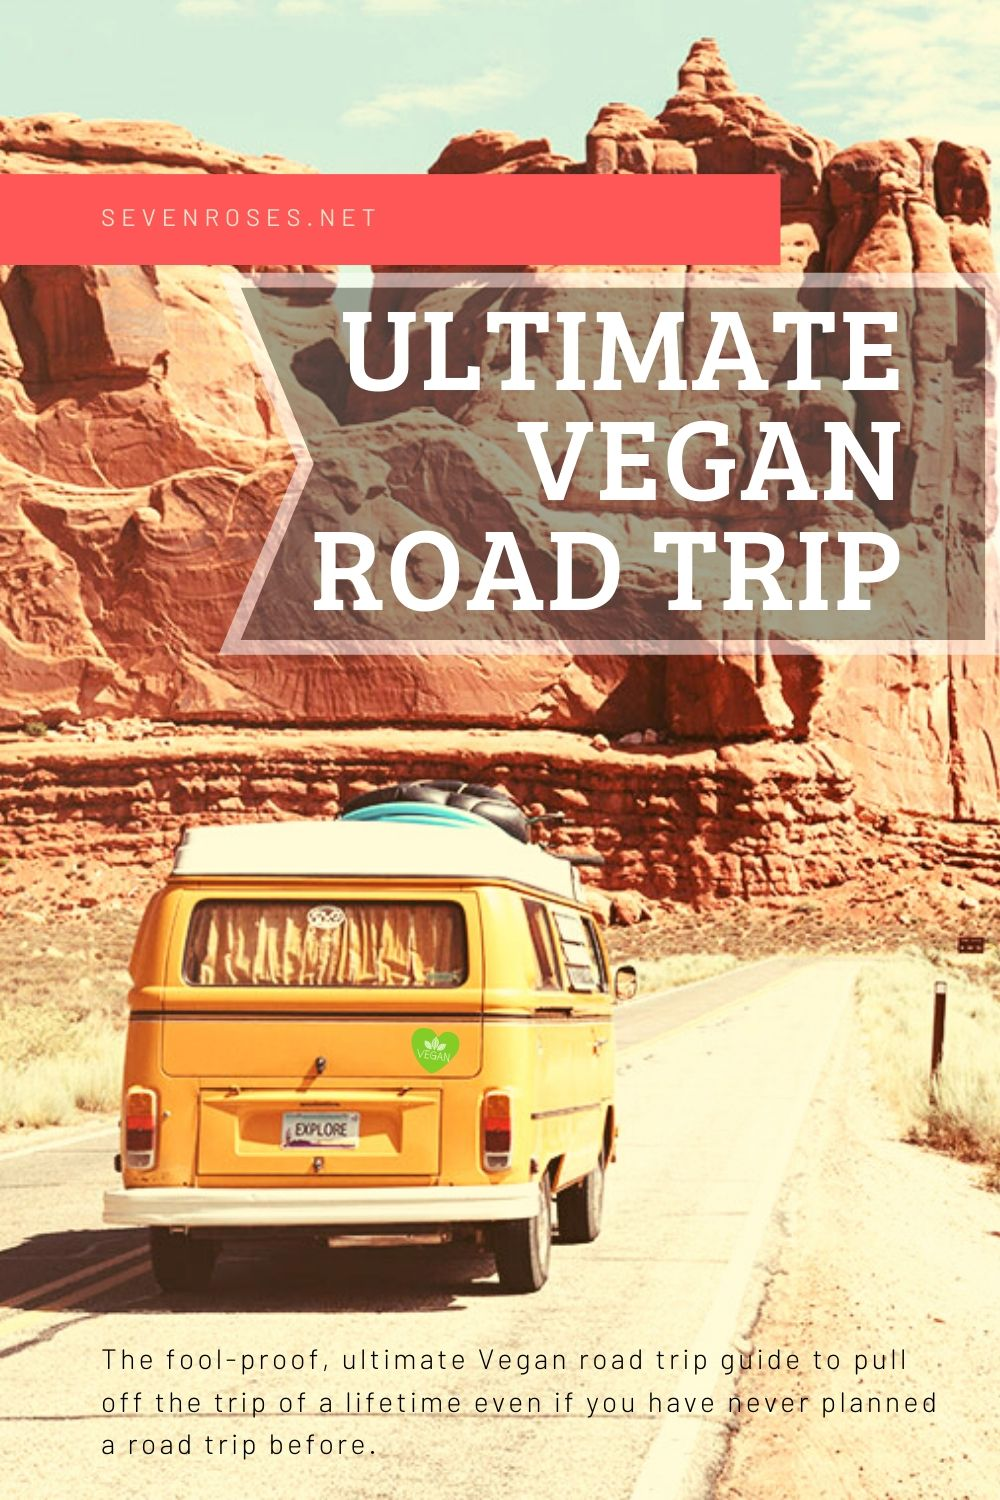 A useful guide to the ultimate Vegan road trip